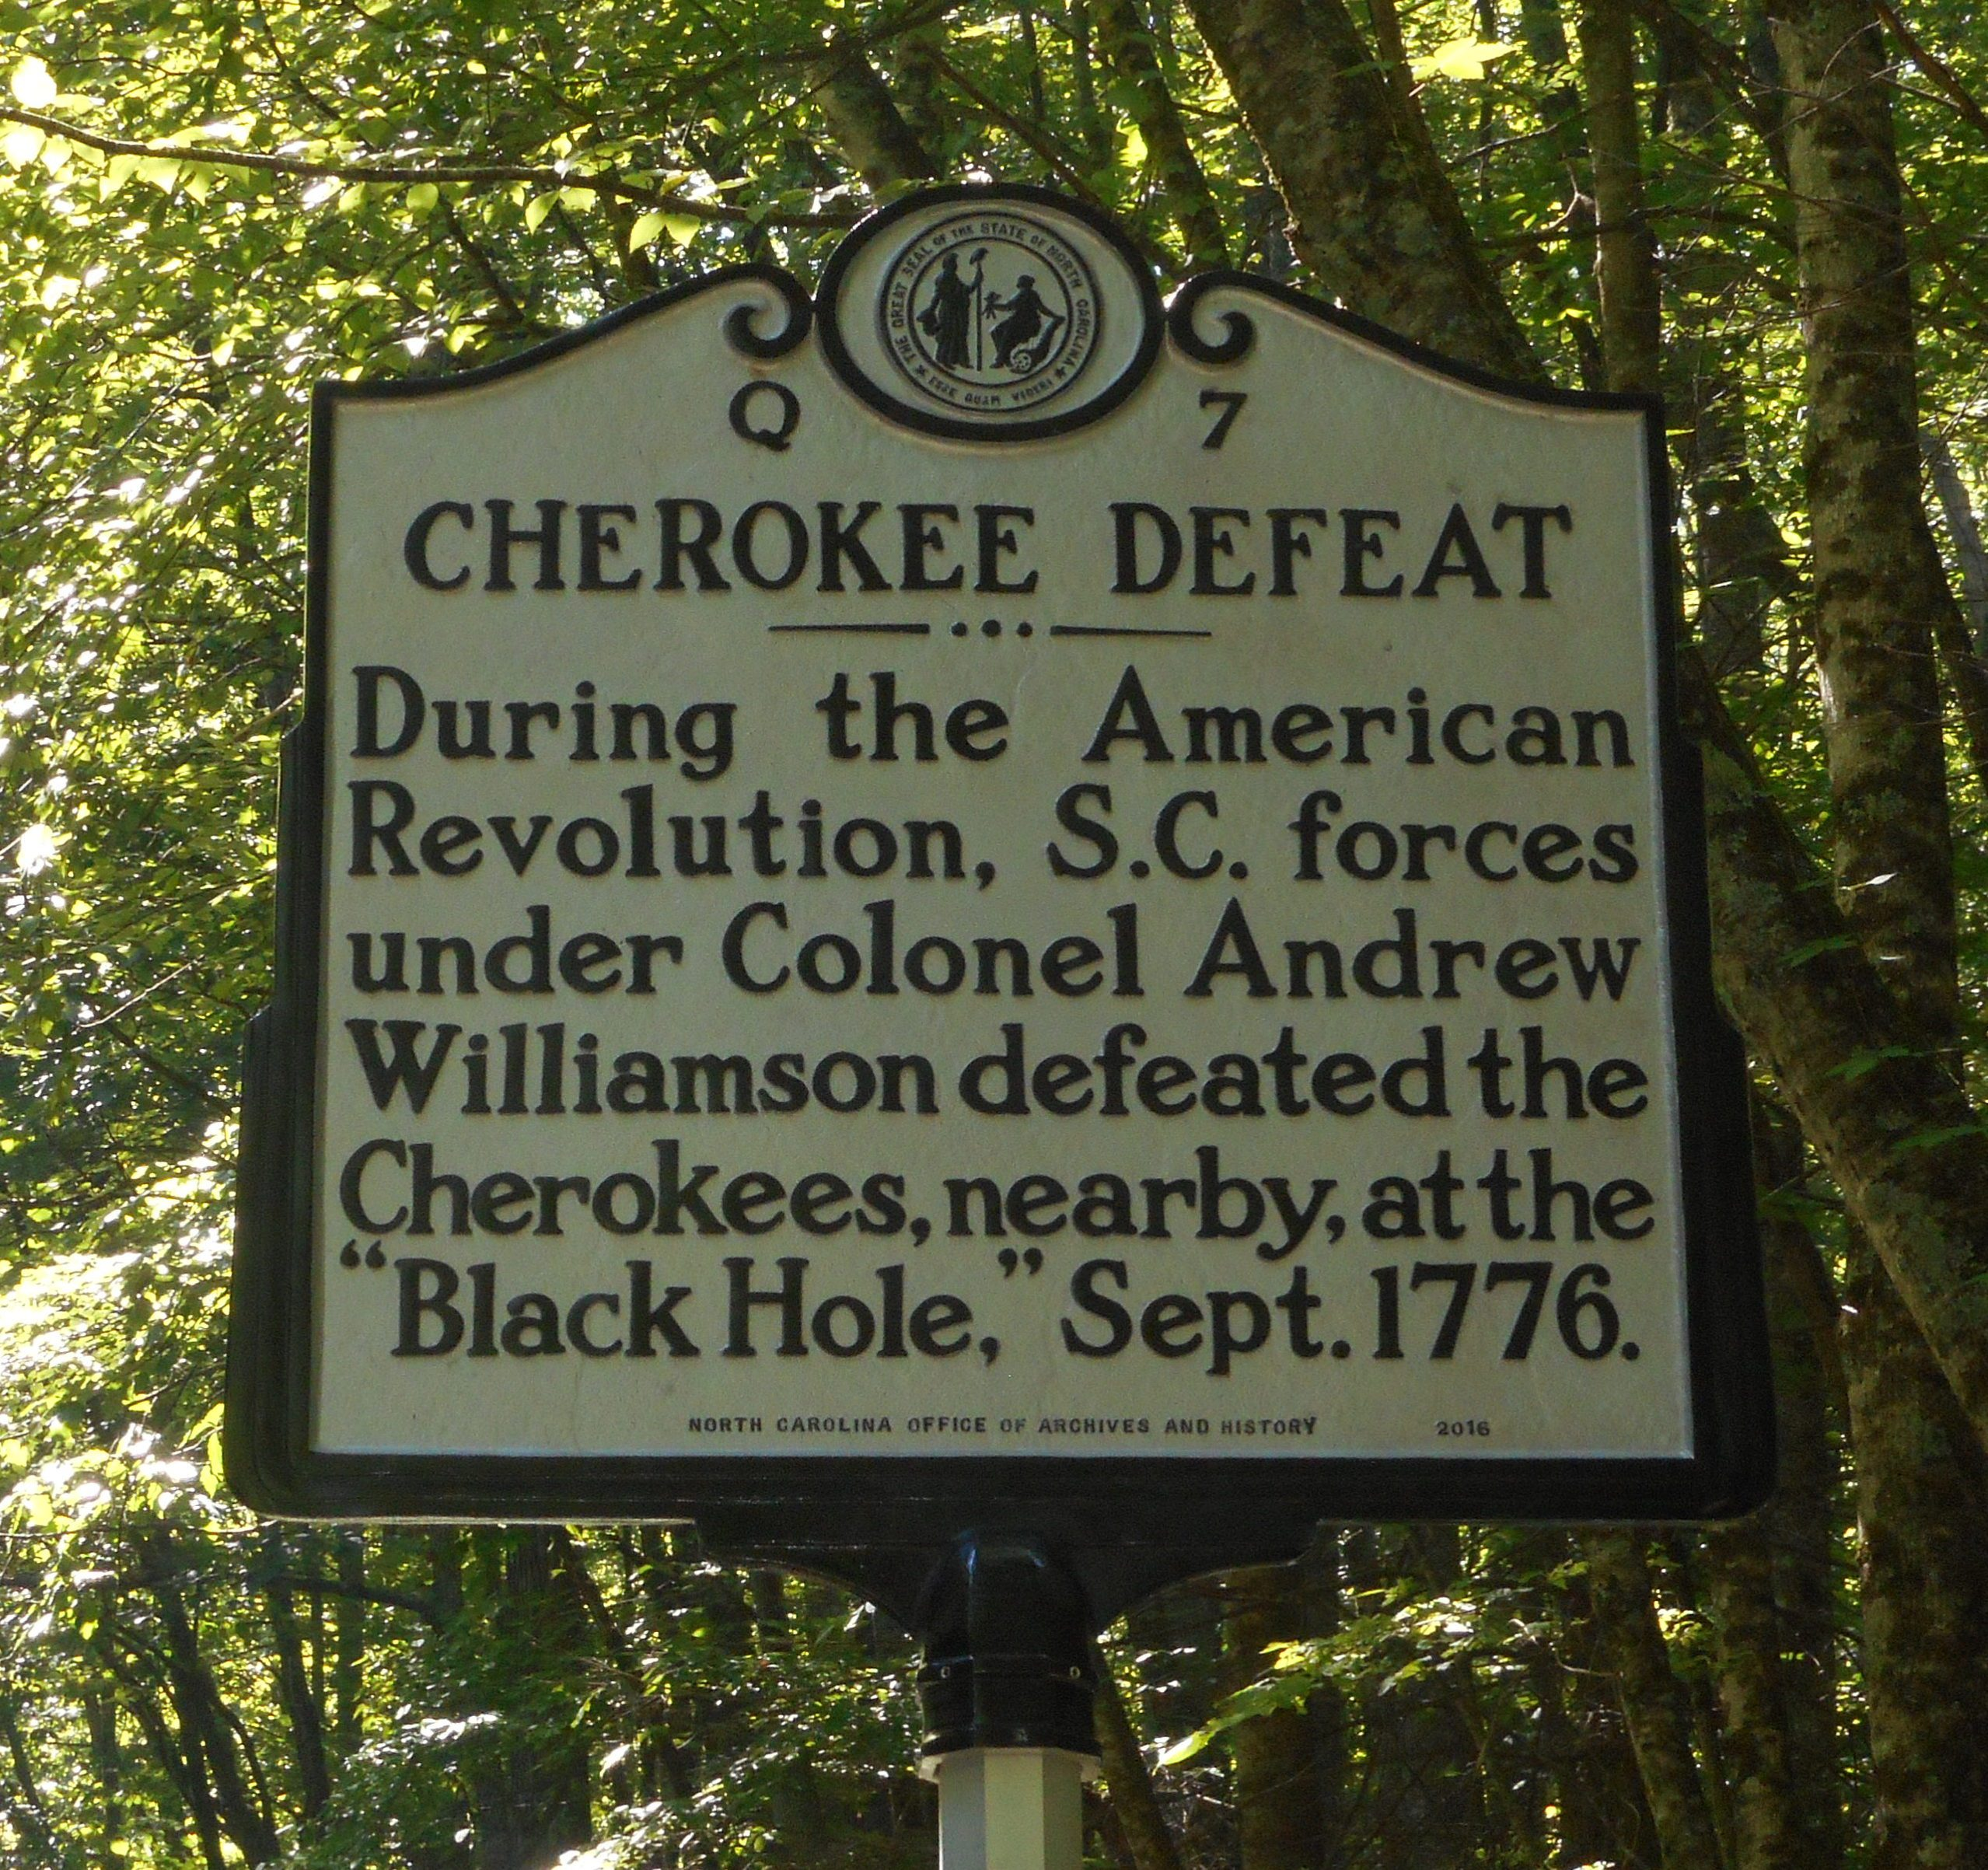 "Cherokee Defeat - During the American Revolution, S.C. forces under Colonel Andrew Williamson defeated the Cherokees, nearby, at the ""Black Hole."" Sept. 1776."